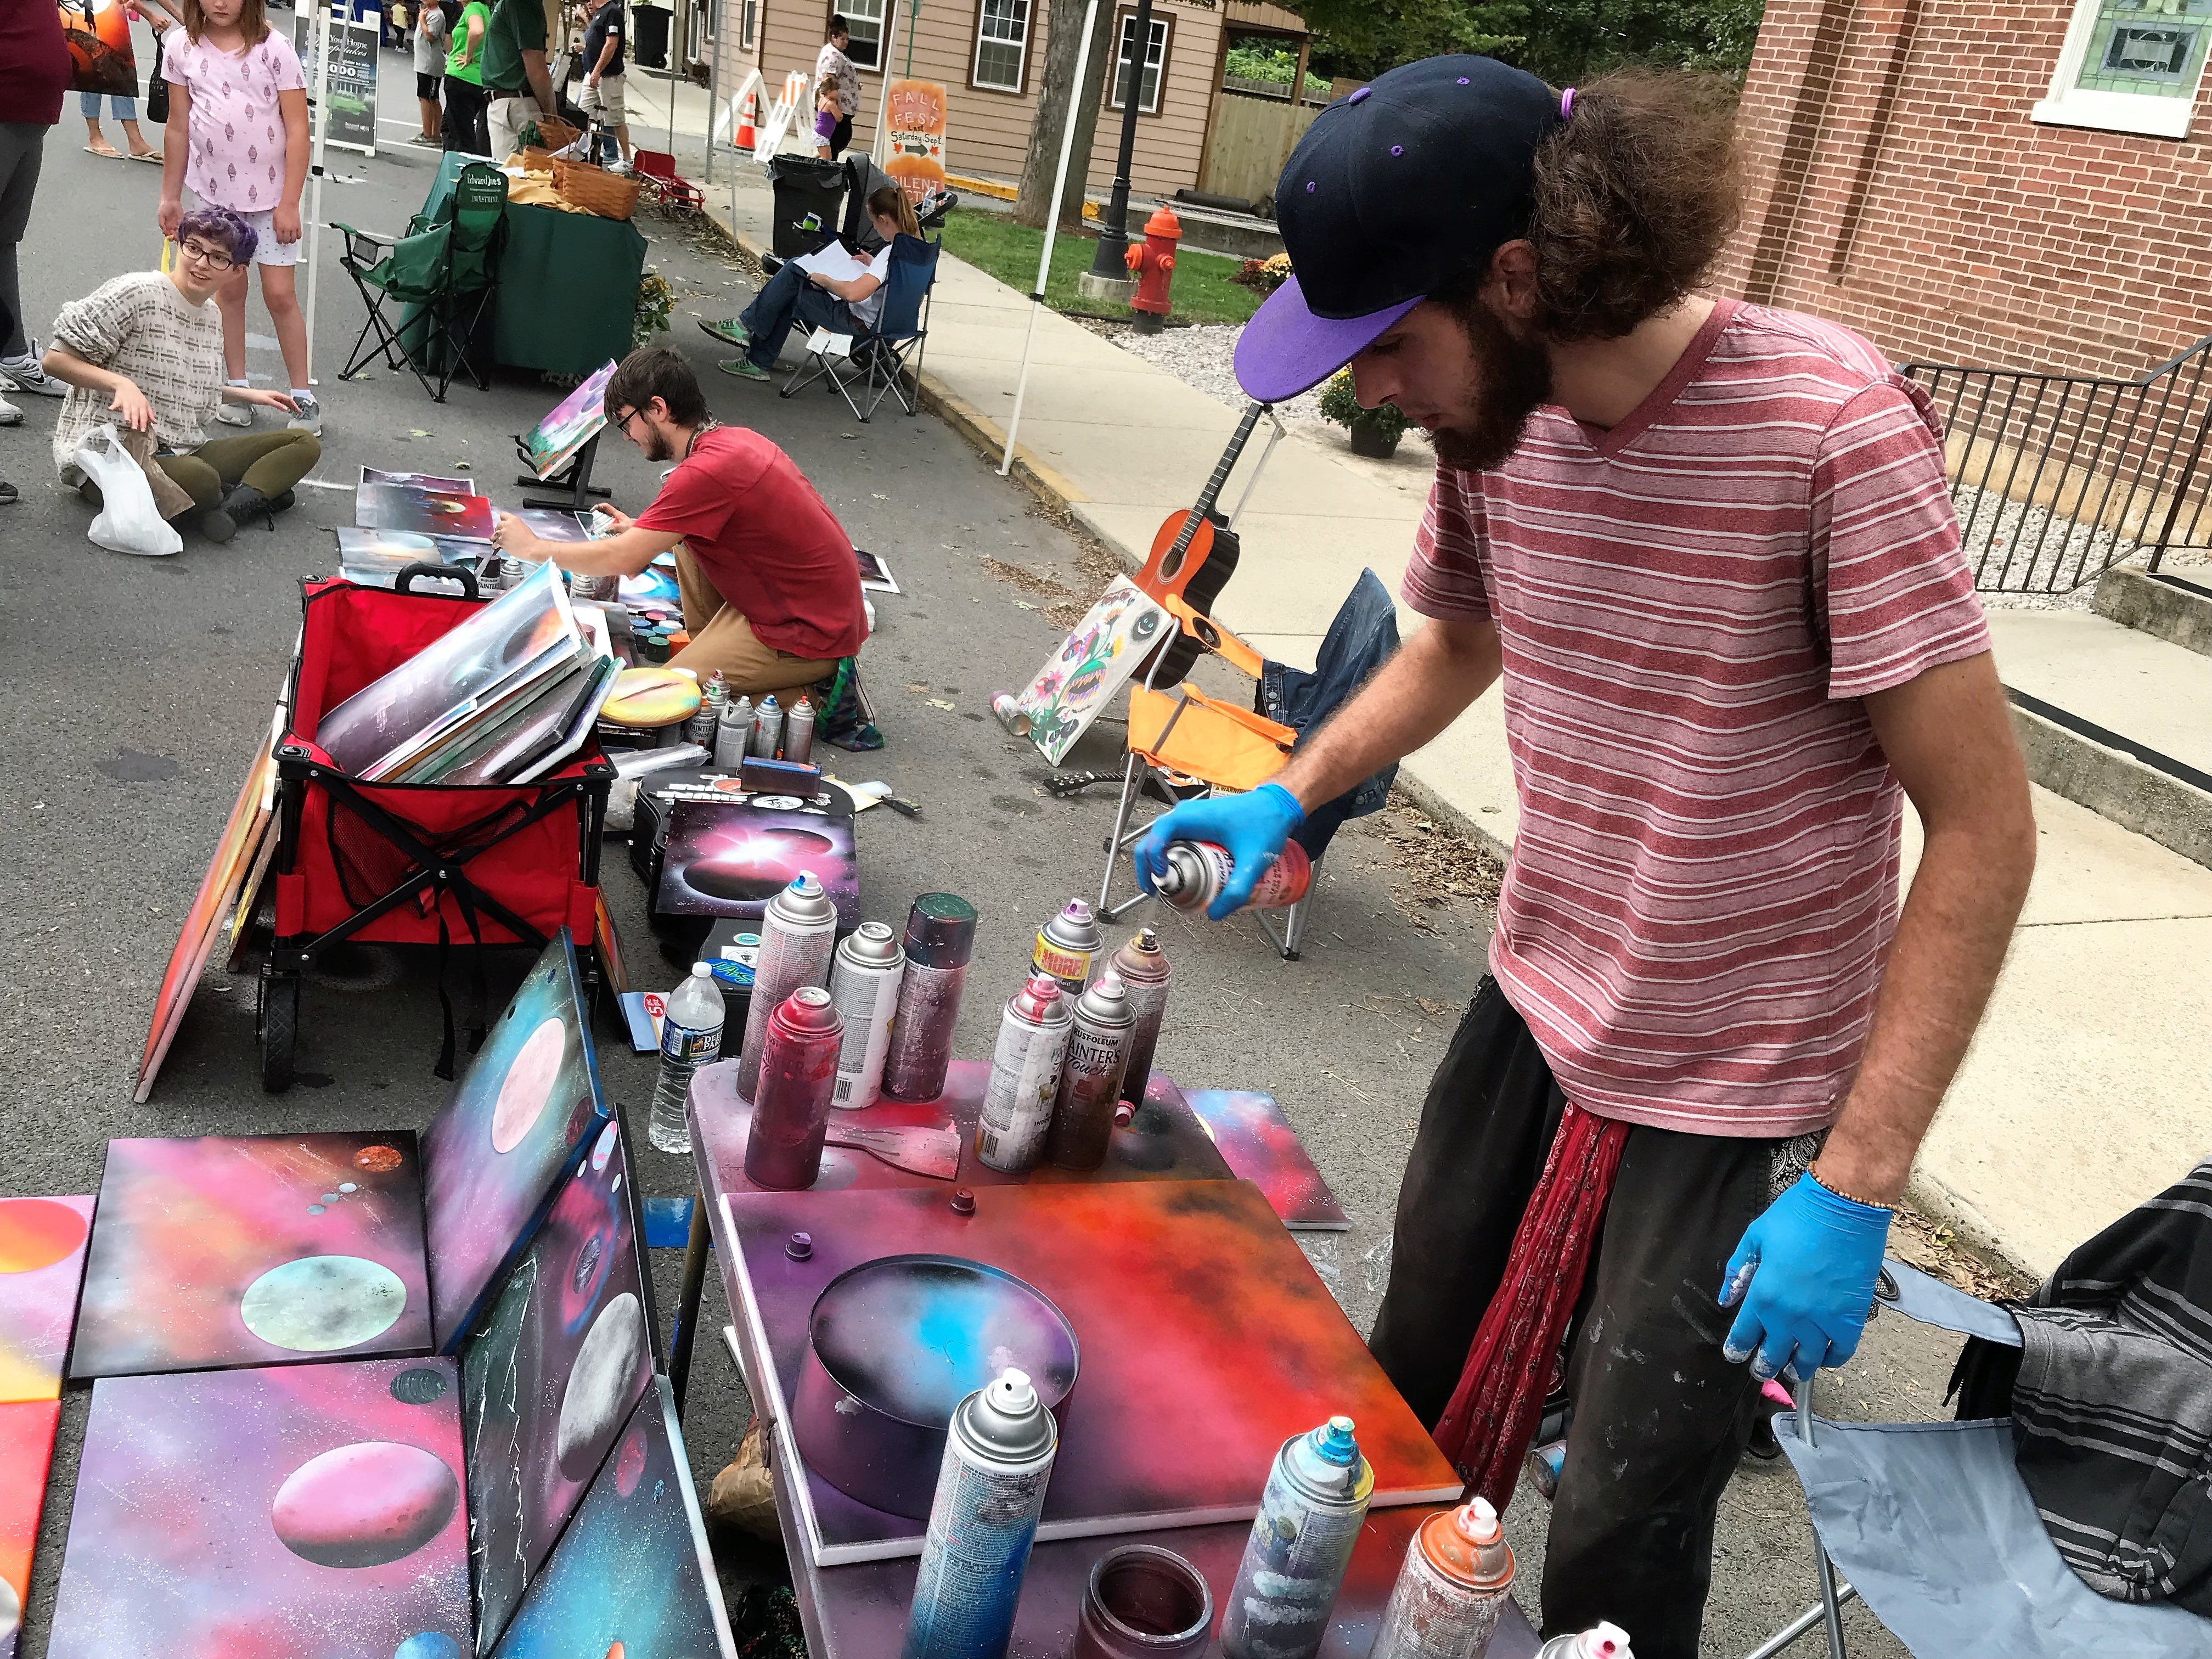 Ace Johnson and Bailey Appleby create and sell spraypaint art on Saturday, Sept. 29, 2018, at Mercersburg Townfest.